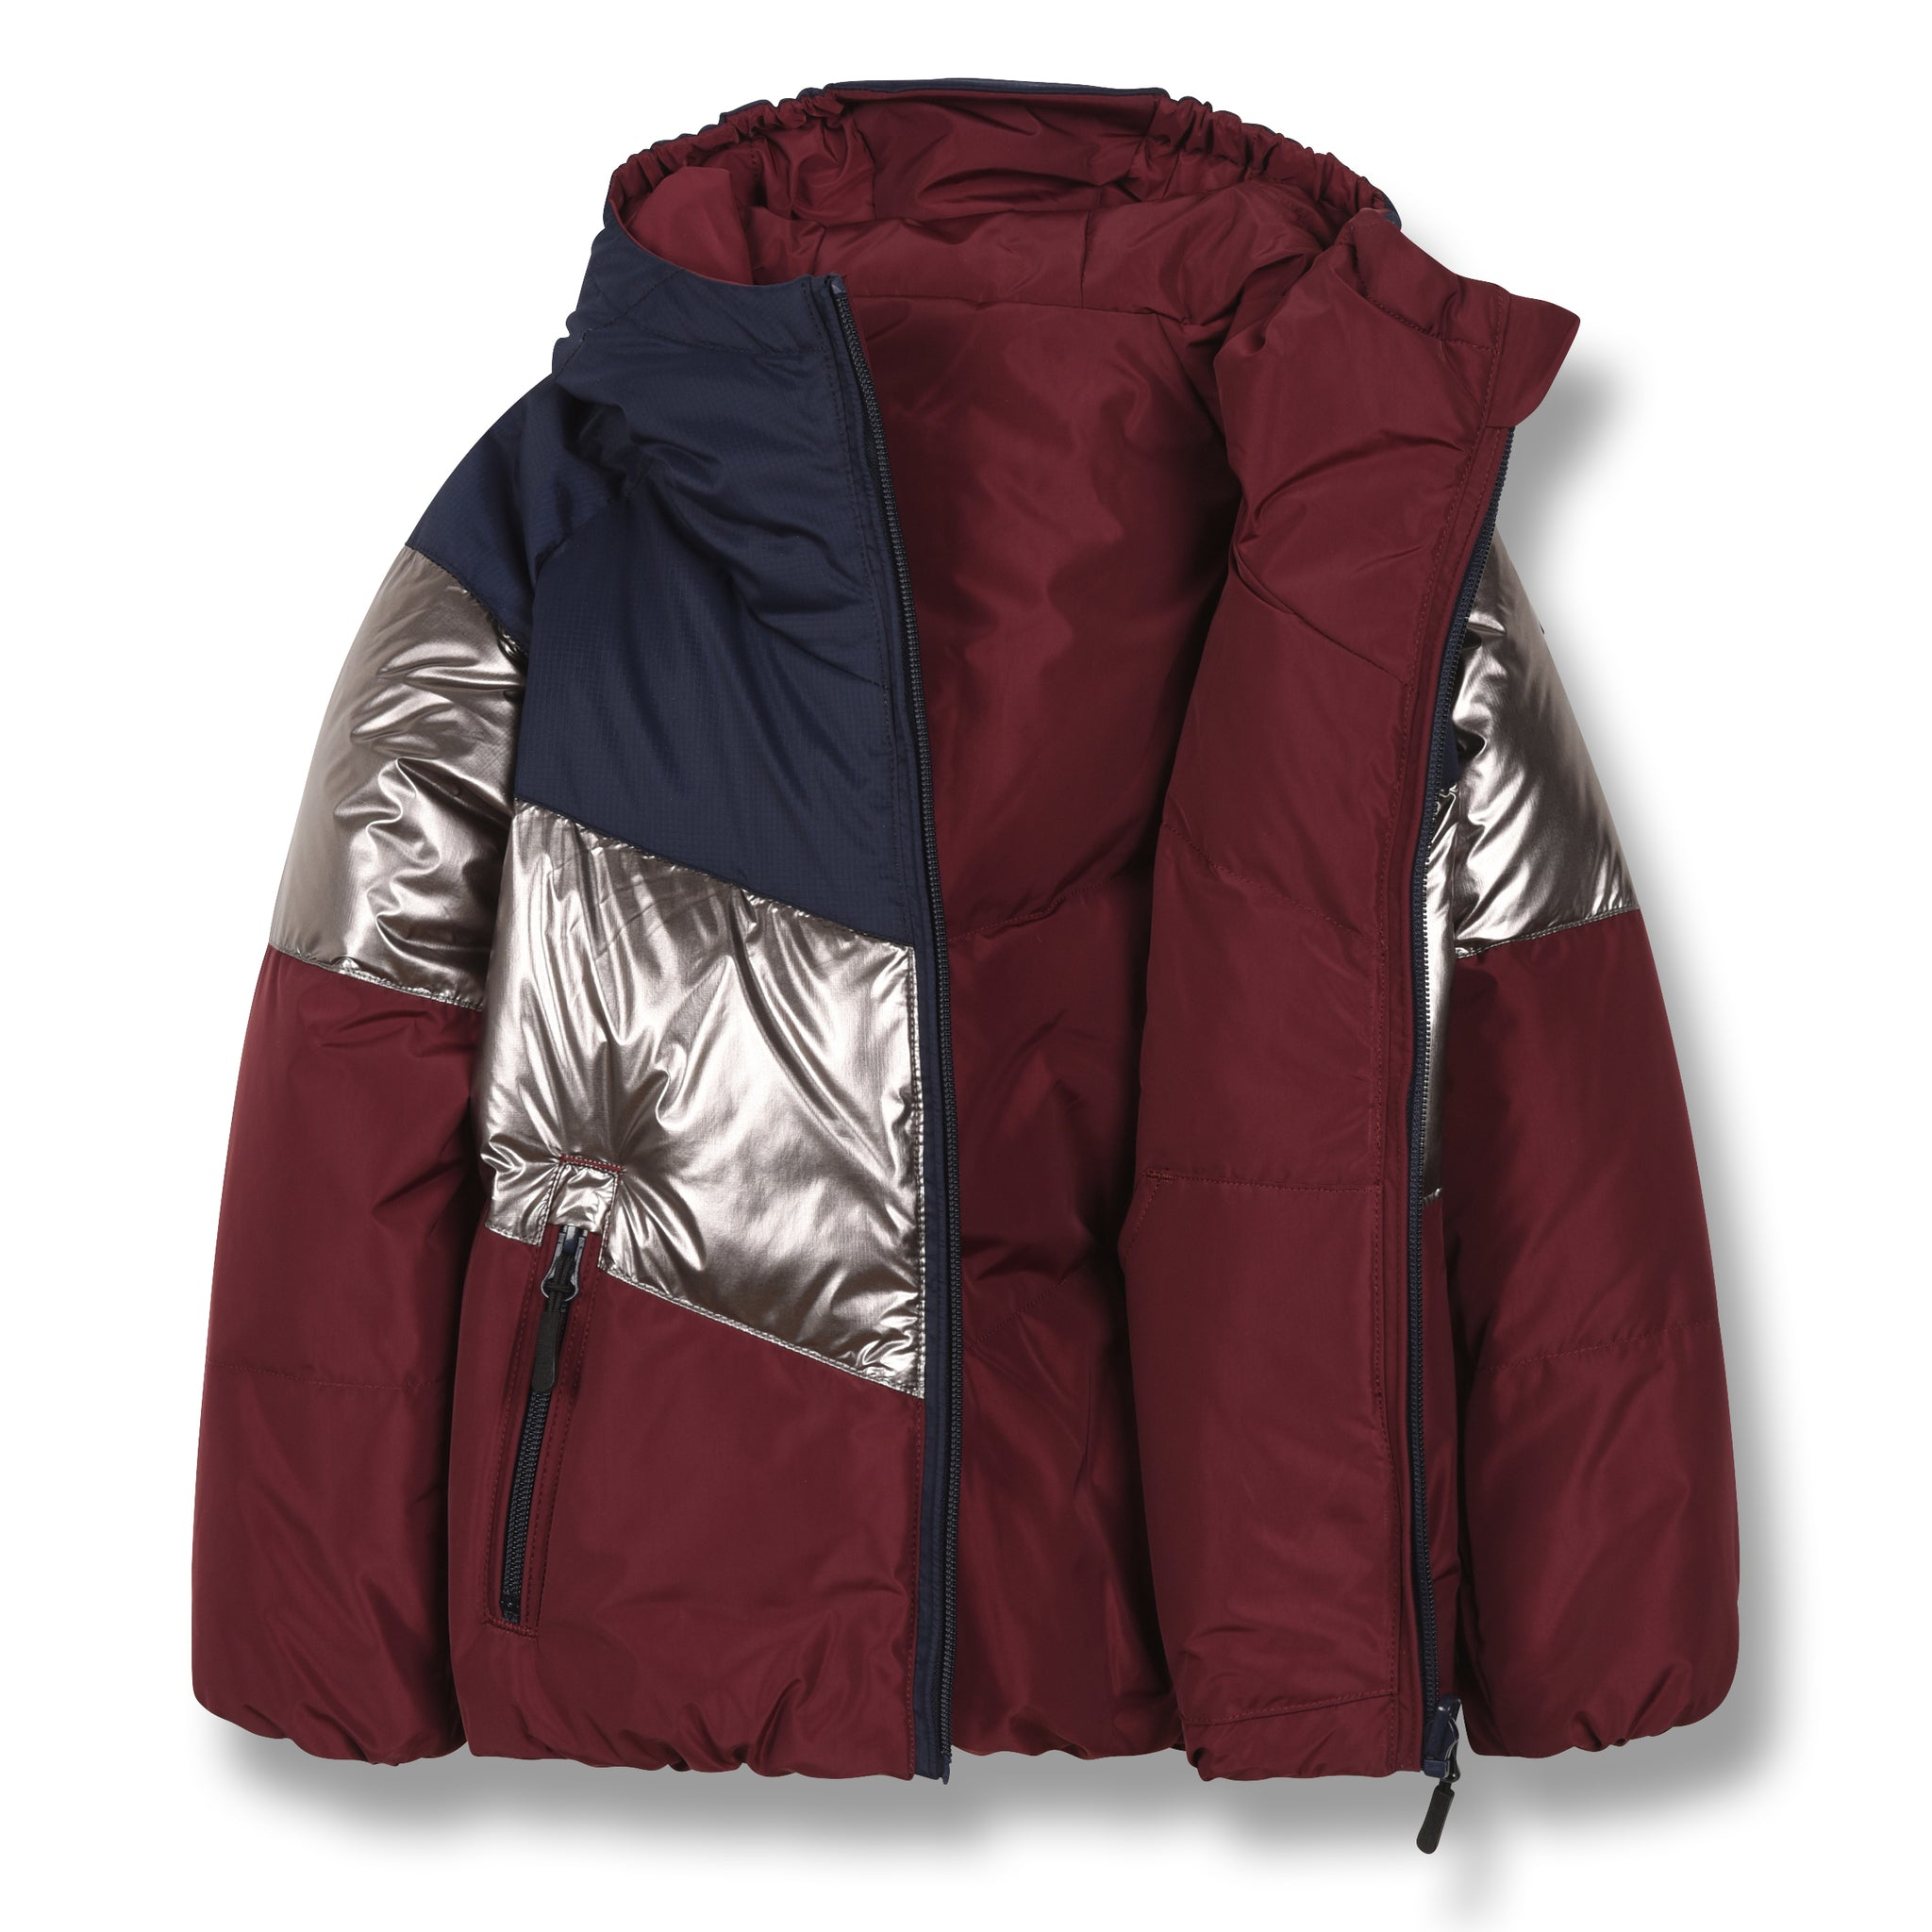 SNOWDANCE Multicolor Colorblock - Reversible Down Jacket 2